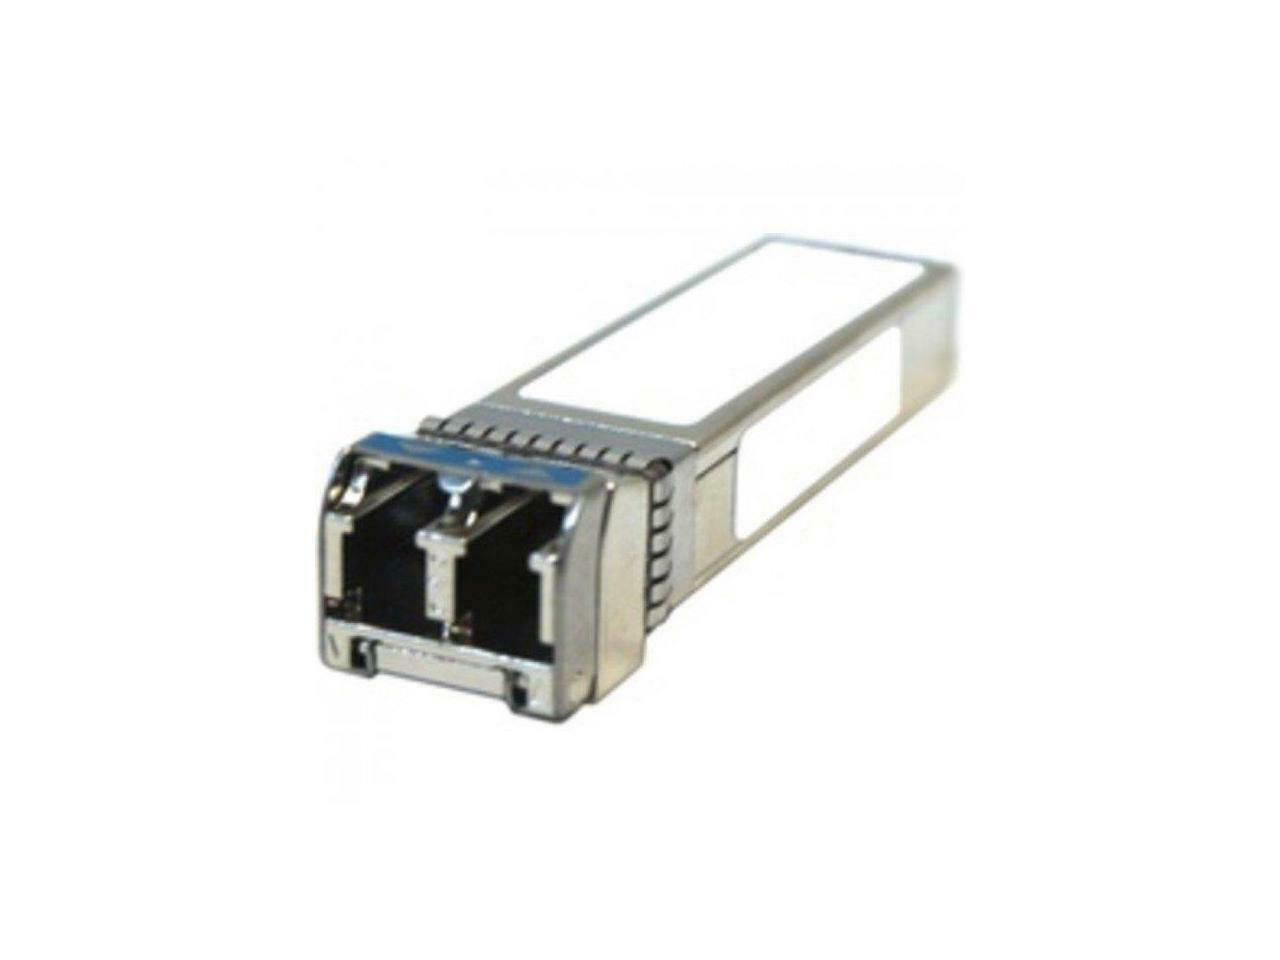 Extreme Networks AA1419043-E6 GigE SFP (mini-GBIC) Transceiver Module - $332.59